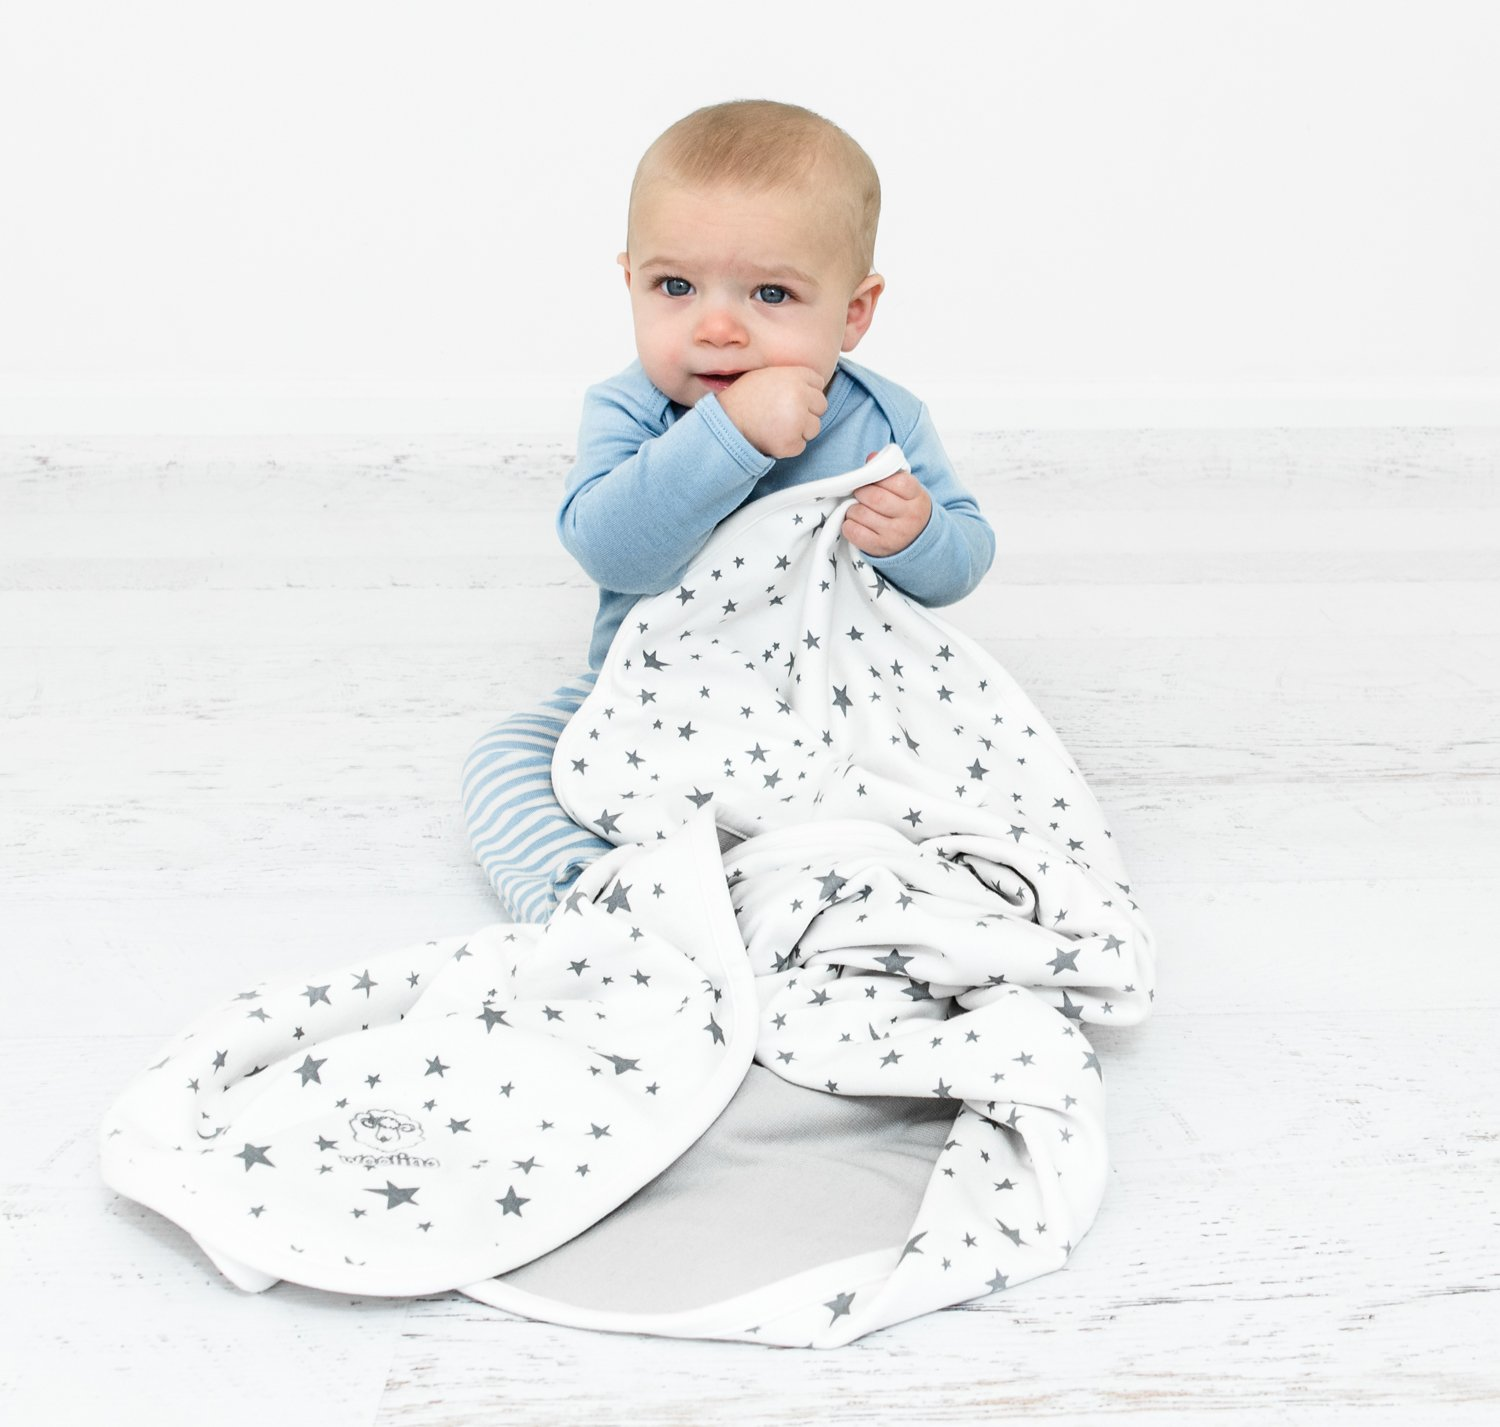 Baby Blanket for Crib or Stroller, Merino Wool Blanket, 40'' x 31.5'', Stars by Woolino (Image #3)